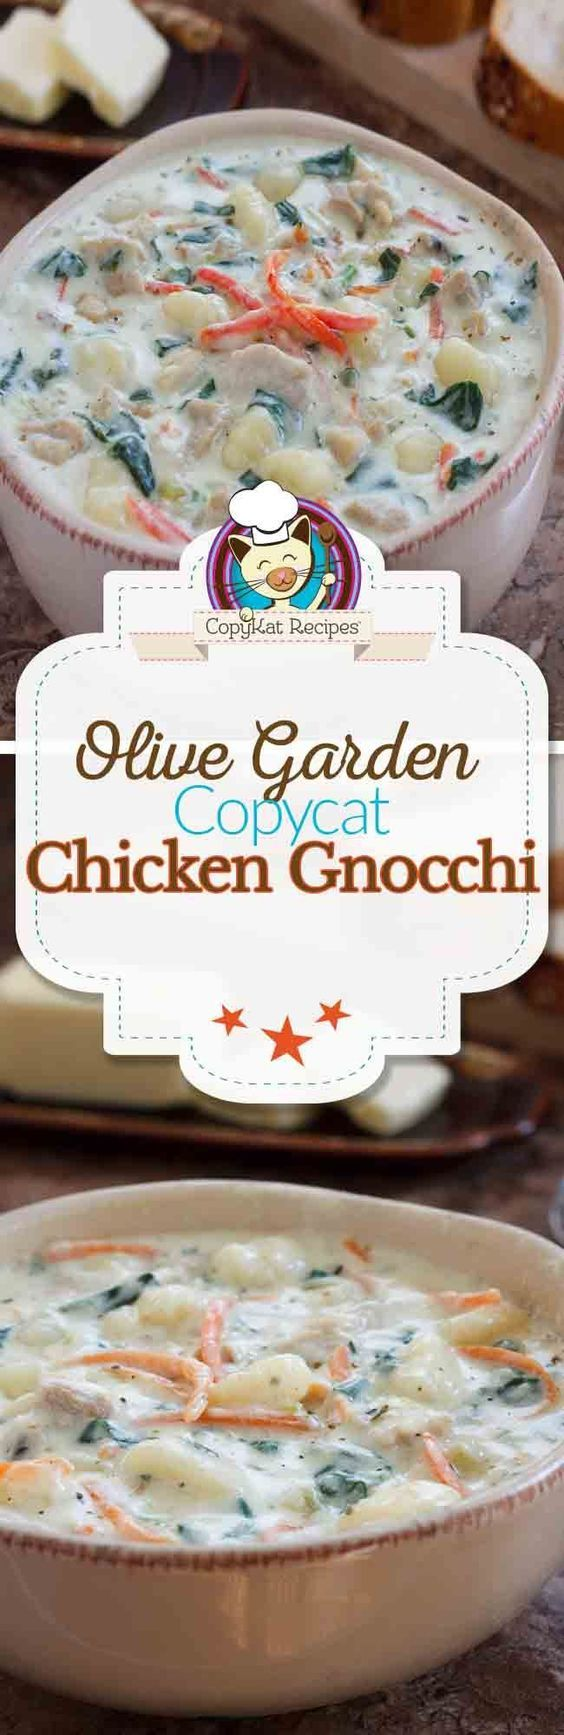 Best 25 Olive Garden Salad Ideas On Pinterest Olive Garden Italian Dressing Olive Lunch